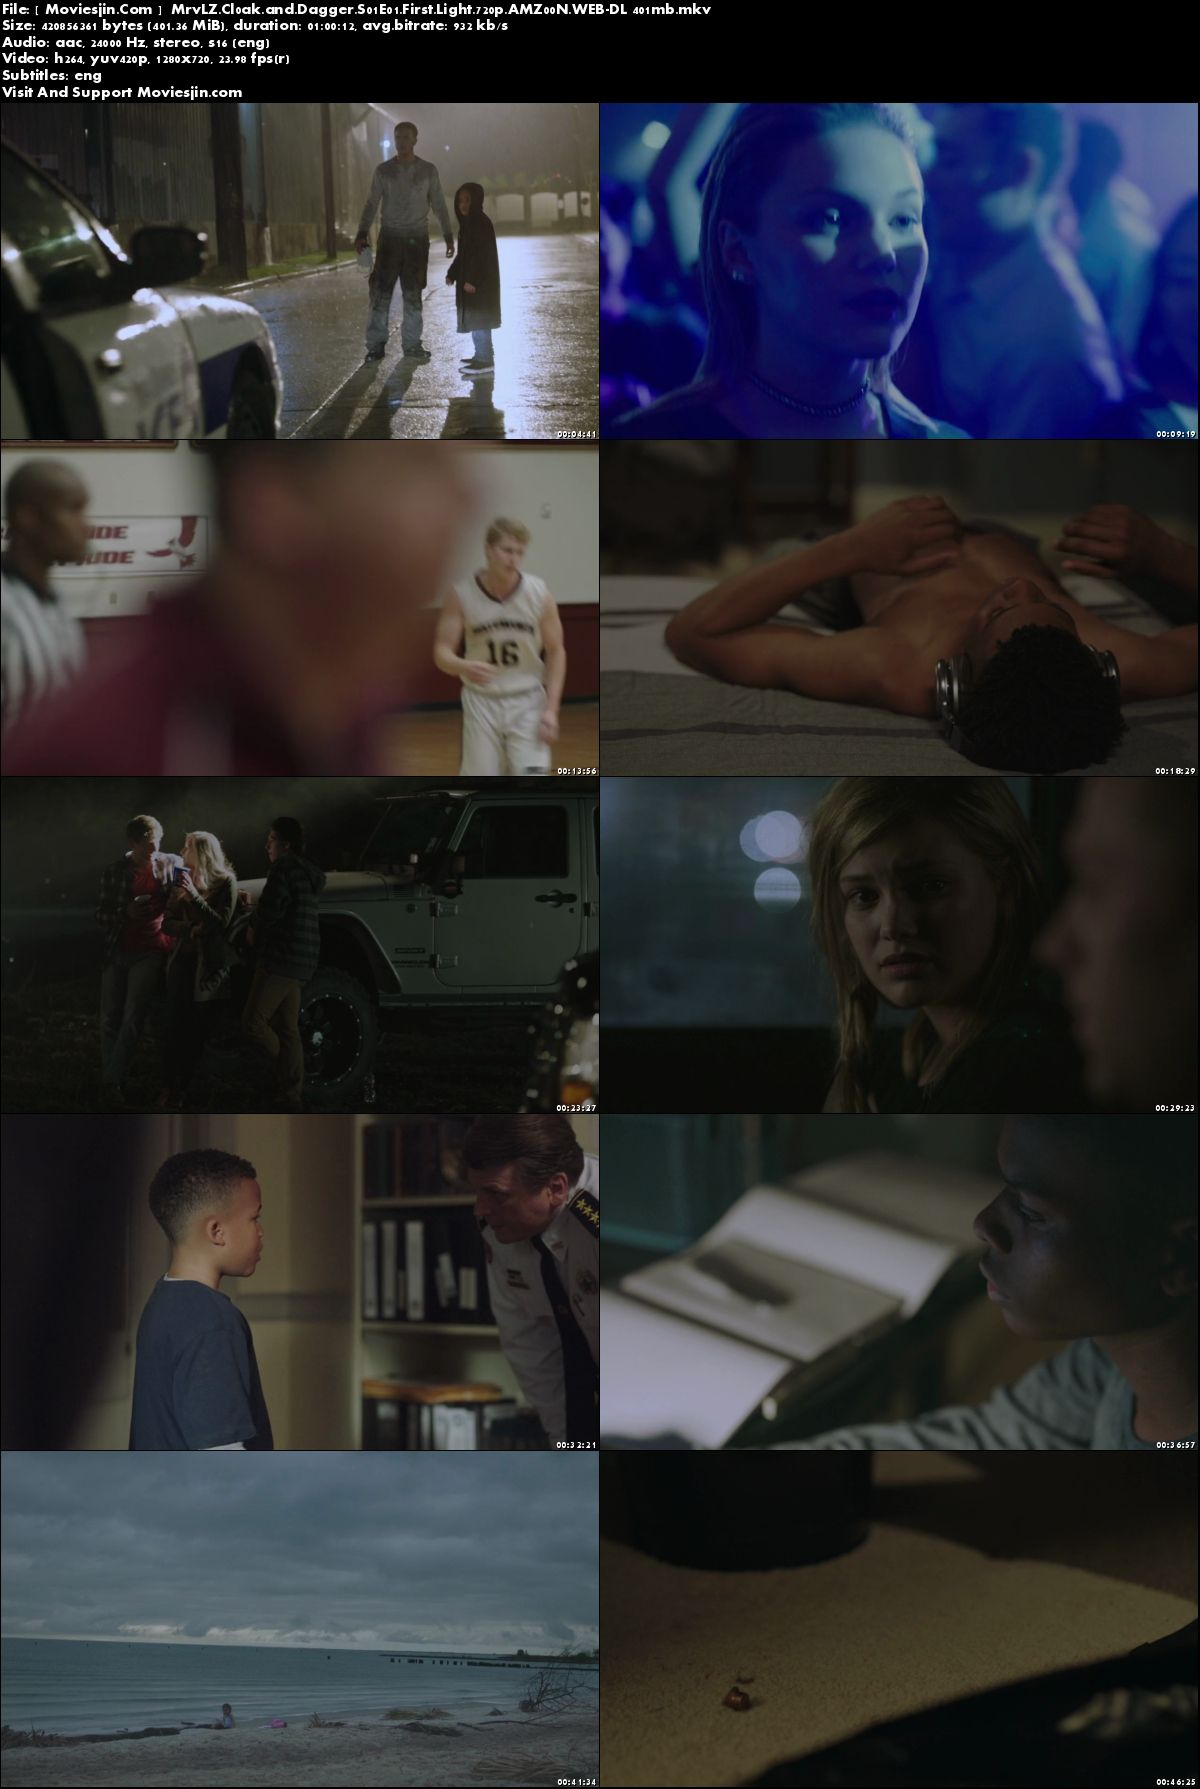 Watch Online Cloak And Dagger S01E01 WEBDL 405MB 720p ESub Full Movie Download mkvcage